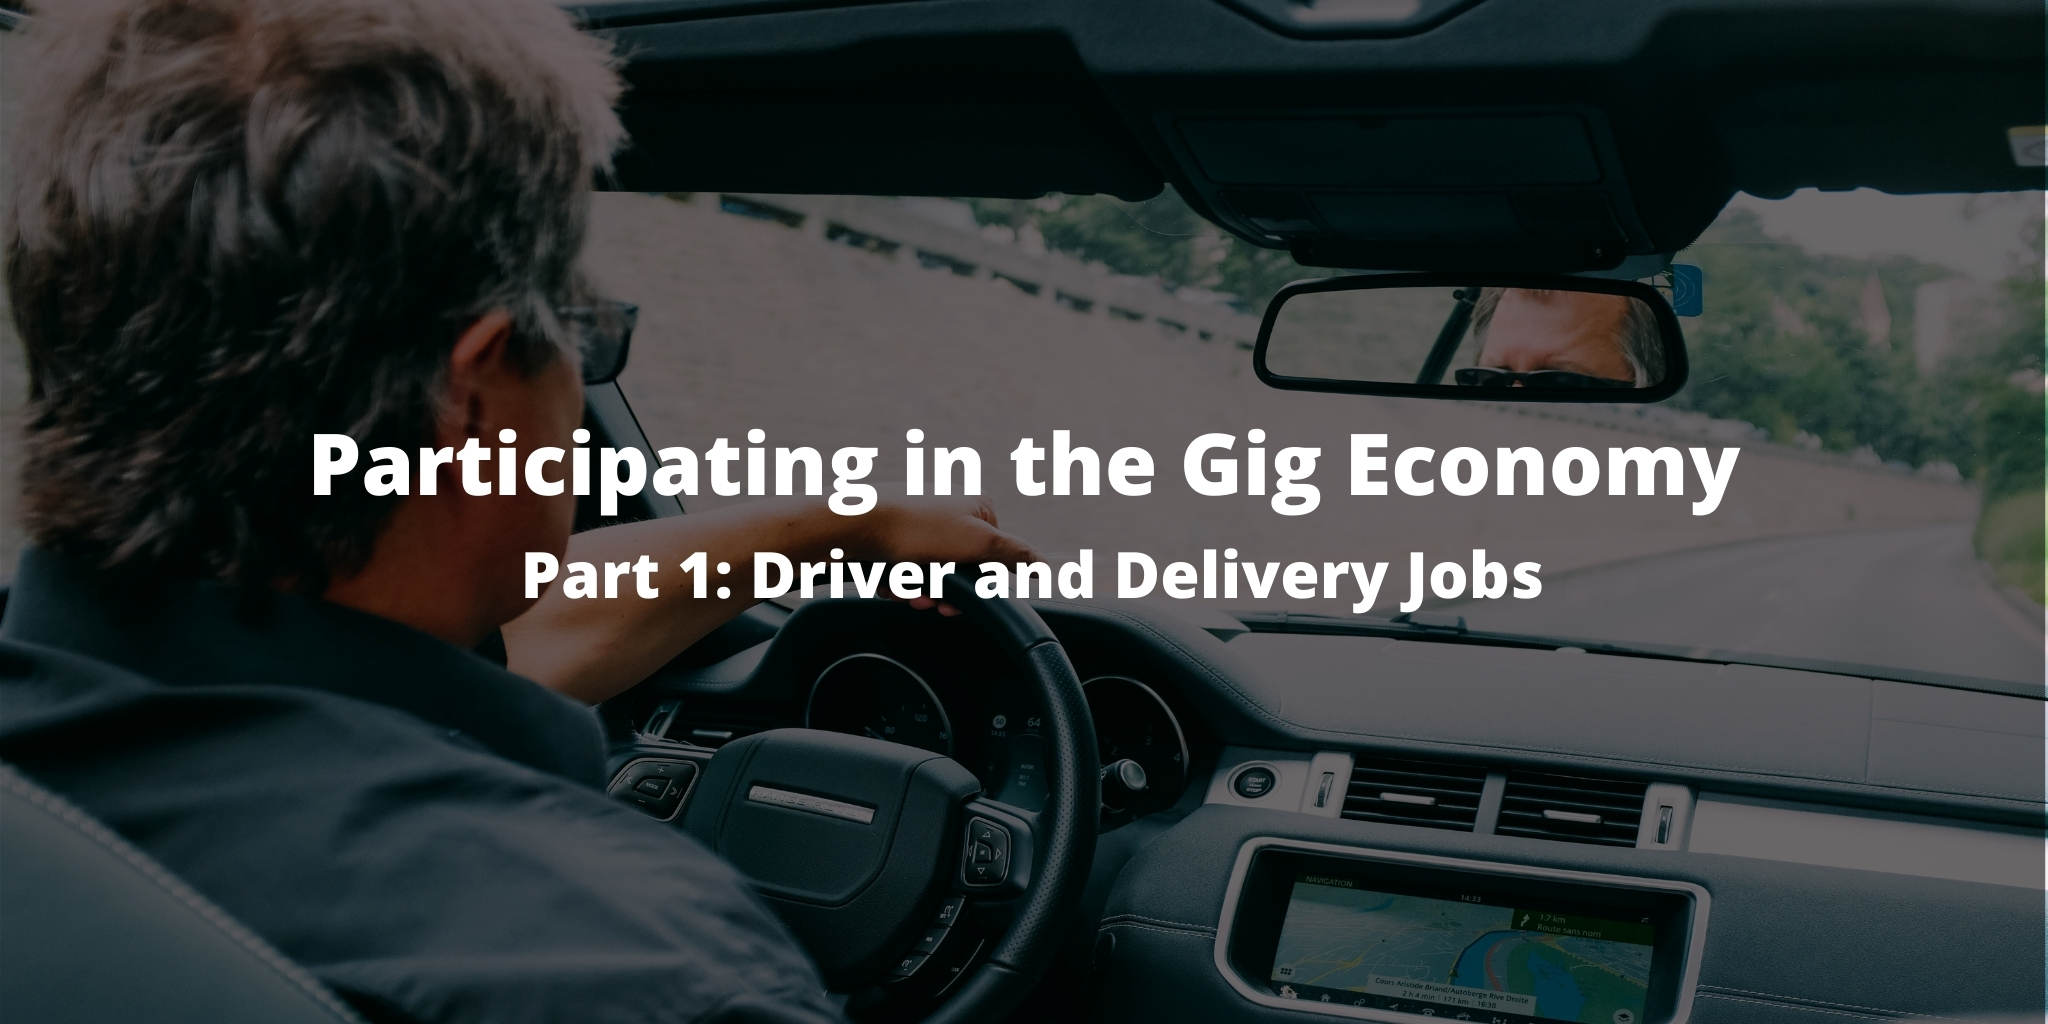 Participating in the Gig Economy: Part 1 - Driver and Delivery Jobs